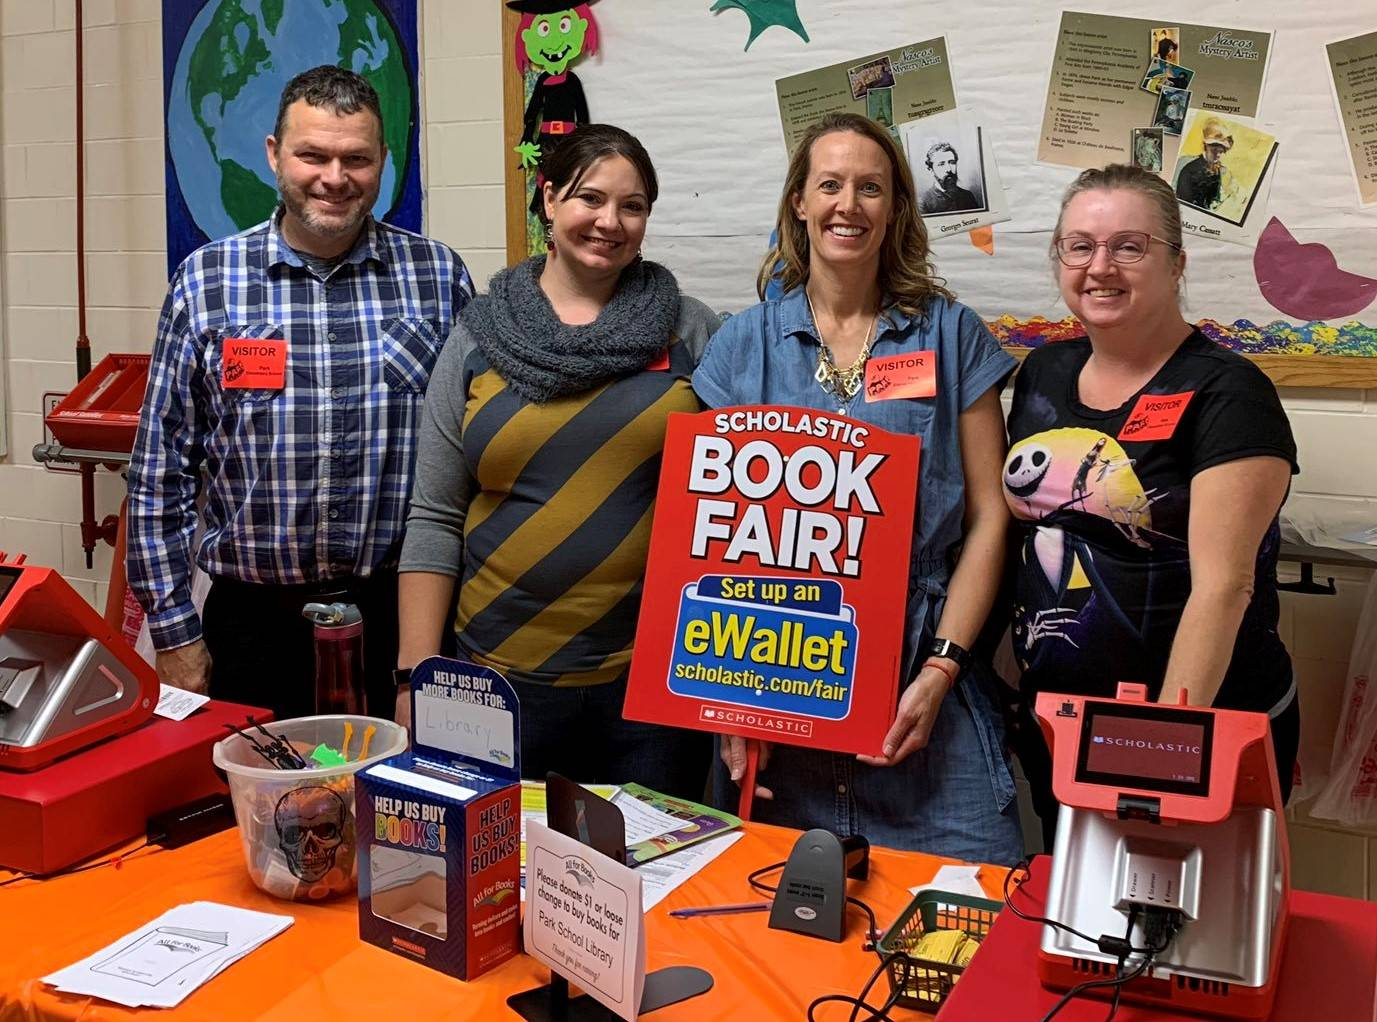 Photo 2:  4 parents volunteering at school Book Fair - standing at table holding up a Book Fair sign